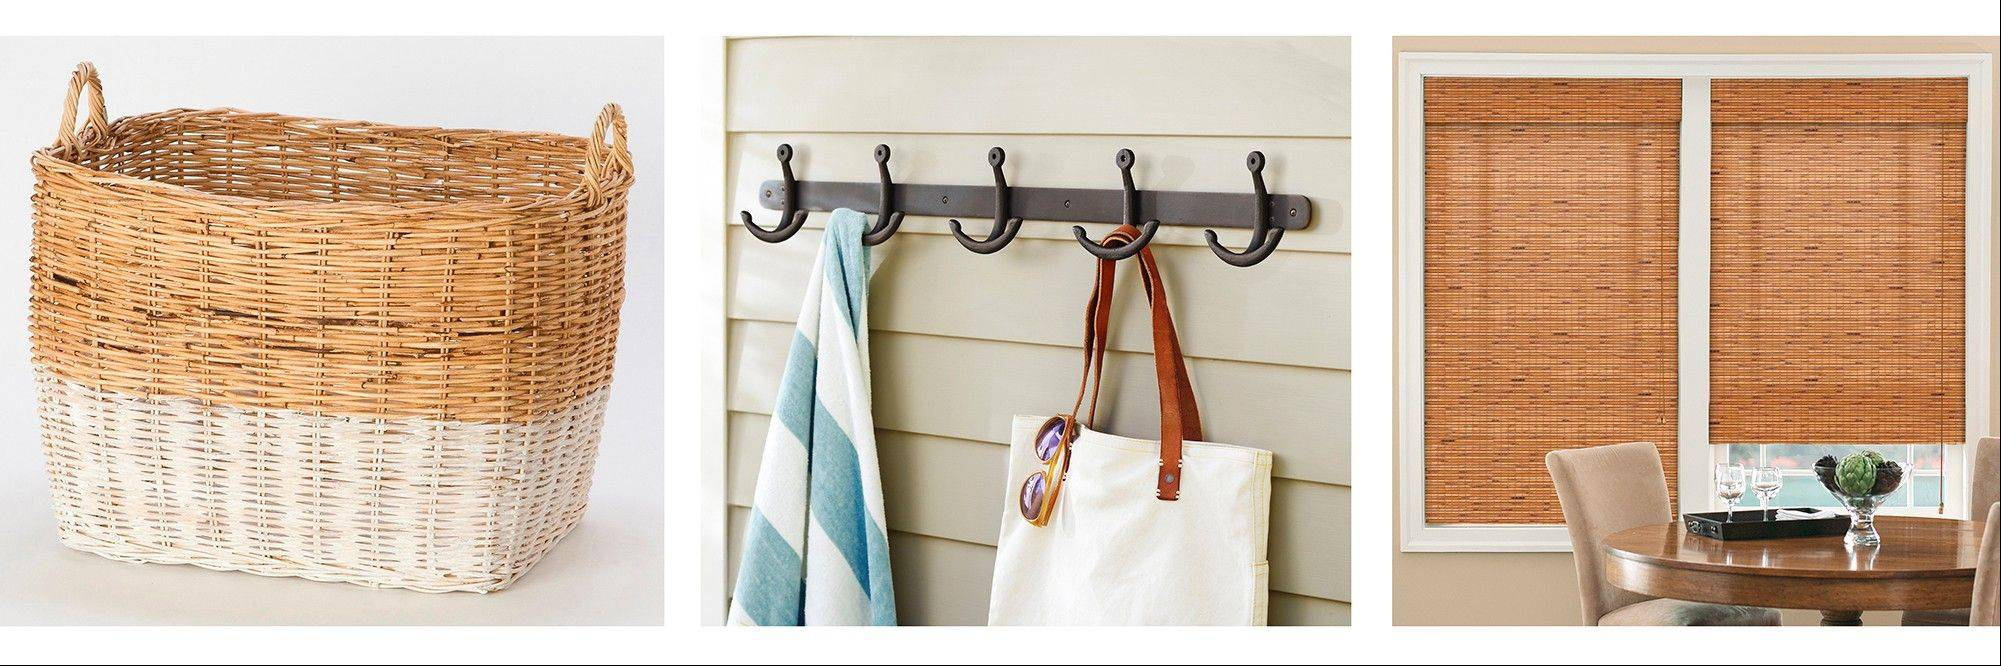 Tame sand and clutter with, from left,Terrain�s color-block wicker basket and Pottery Barn�s anchor row of hooks; window coverings can keep furniture and art from being sunbleached.